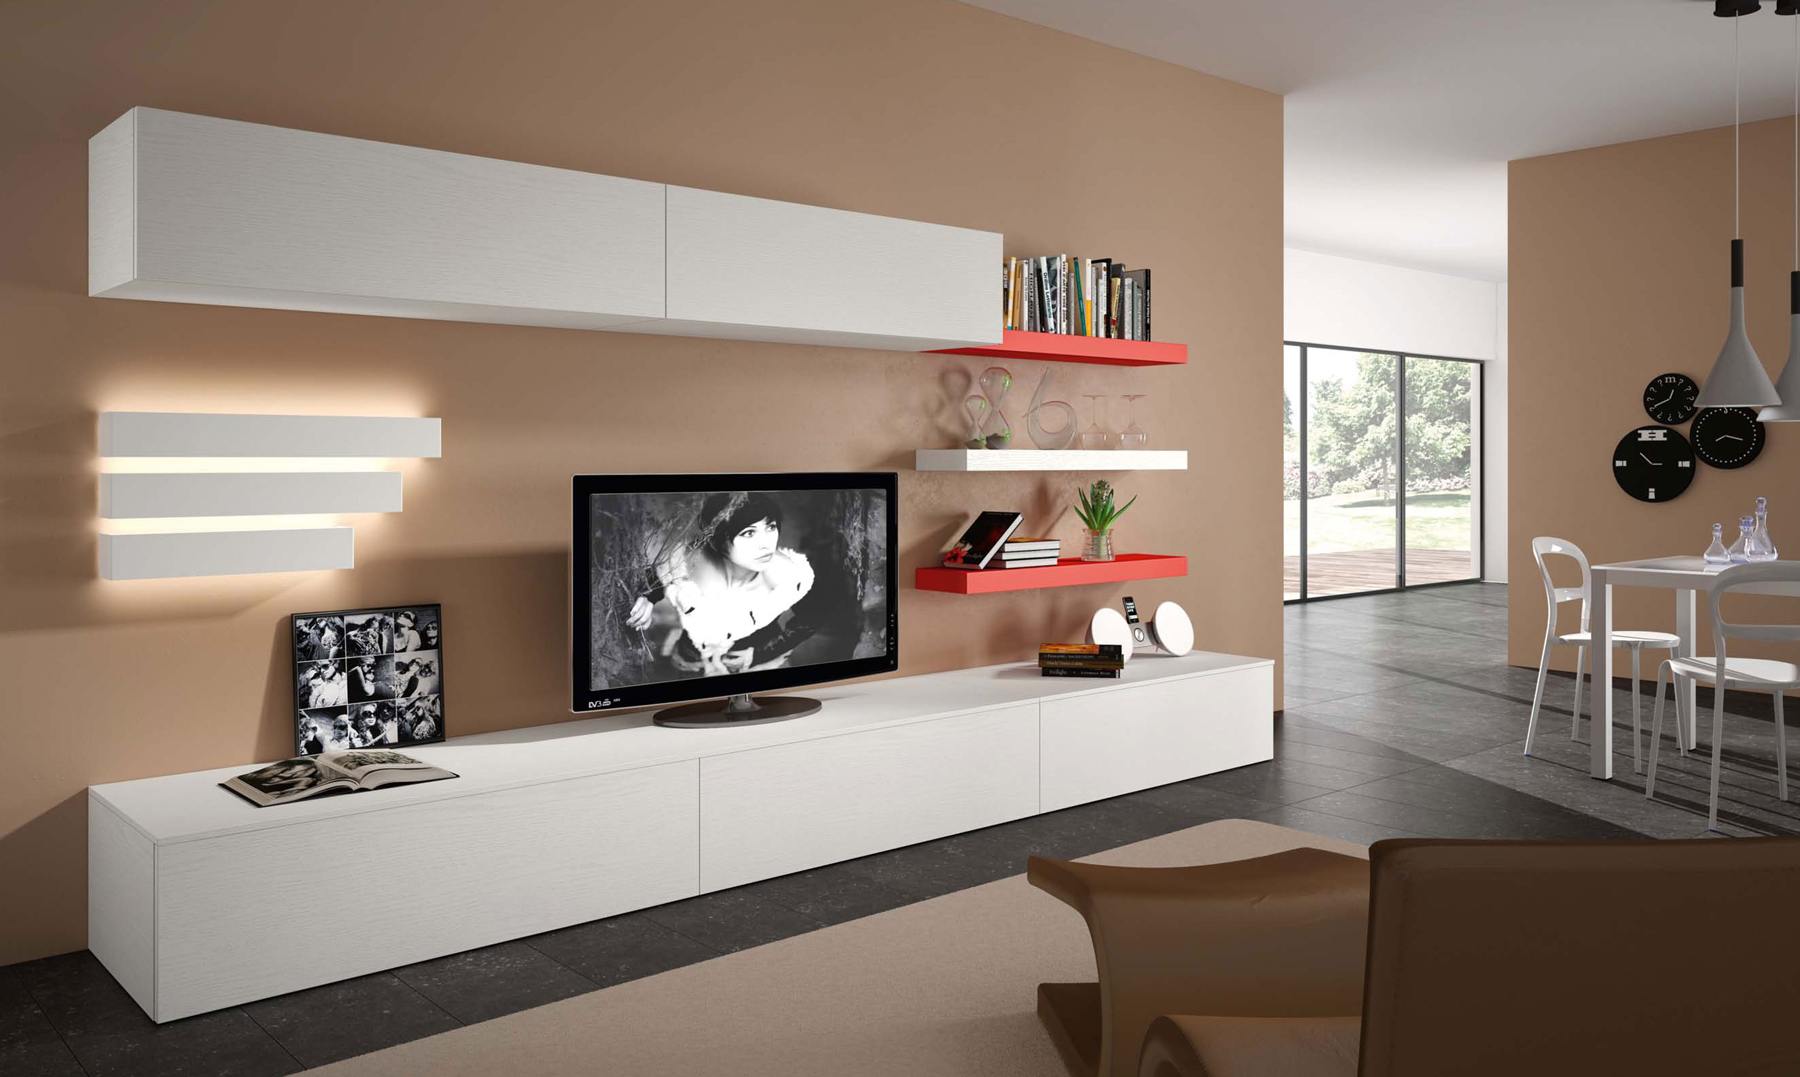 Captivating ... Collections Sma Modern Wall Units Italy Compositon 35.